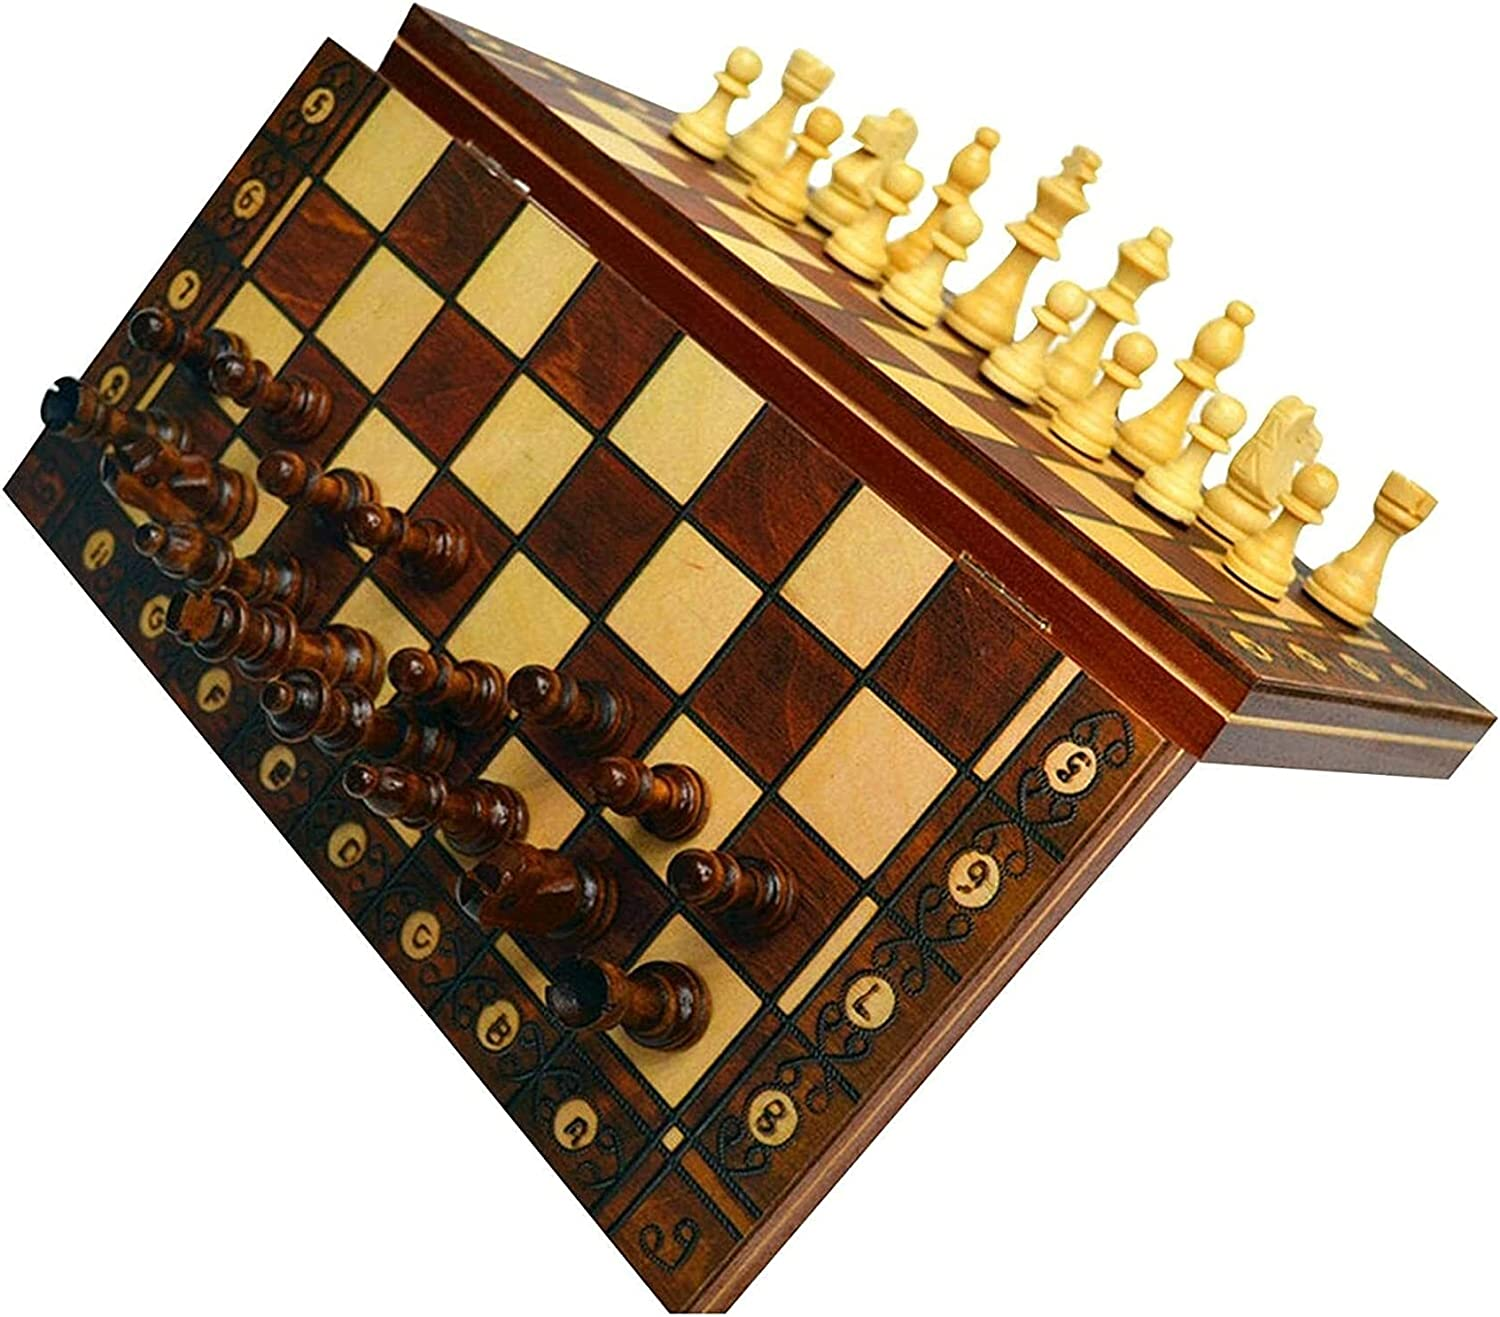 MTCWD Max 86% Credence OFF Artisanal Wooden Chess Set Folding Wood Portable